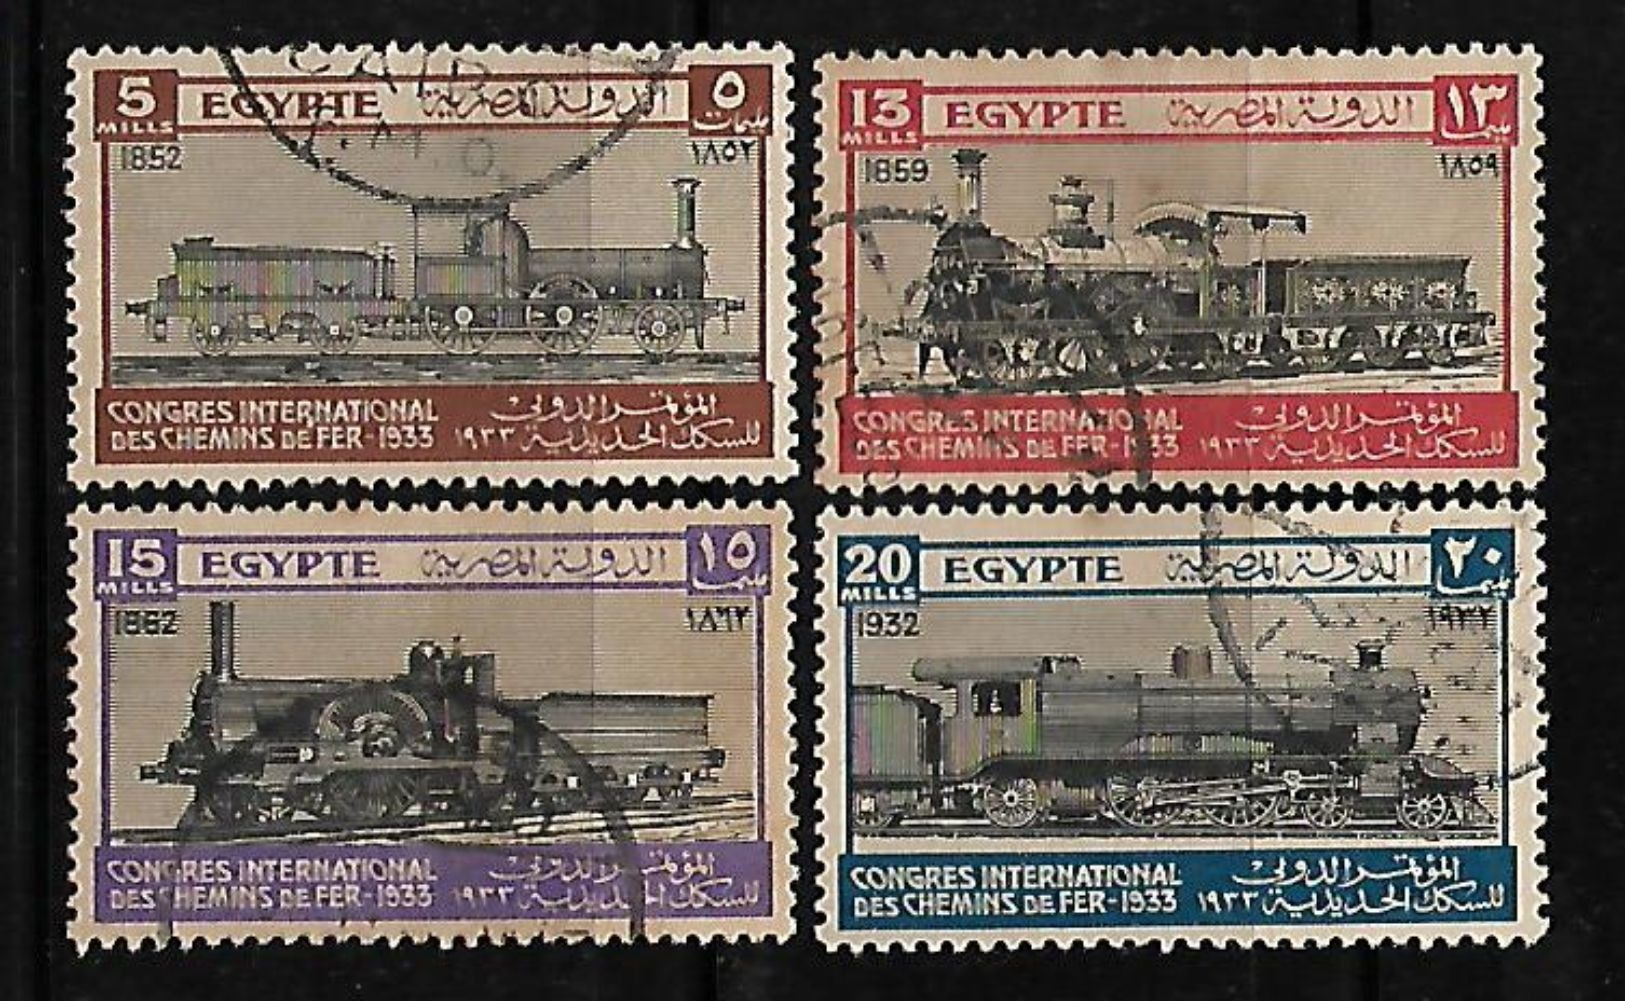 Egypt 1933 Transport Train Engine 4 Value Used Stamps # AR:194 - Trains